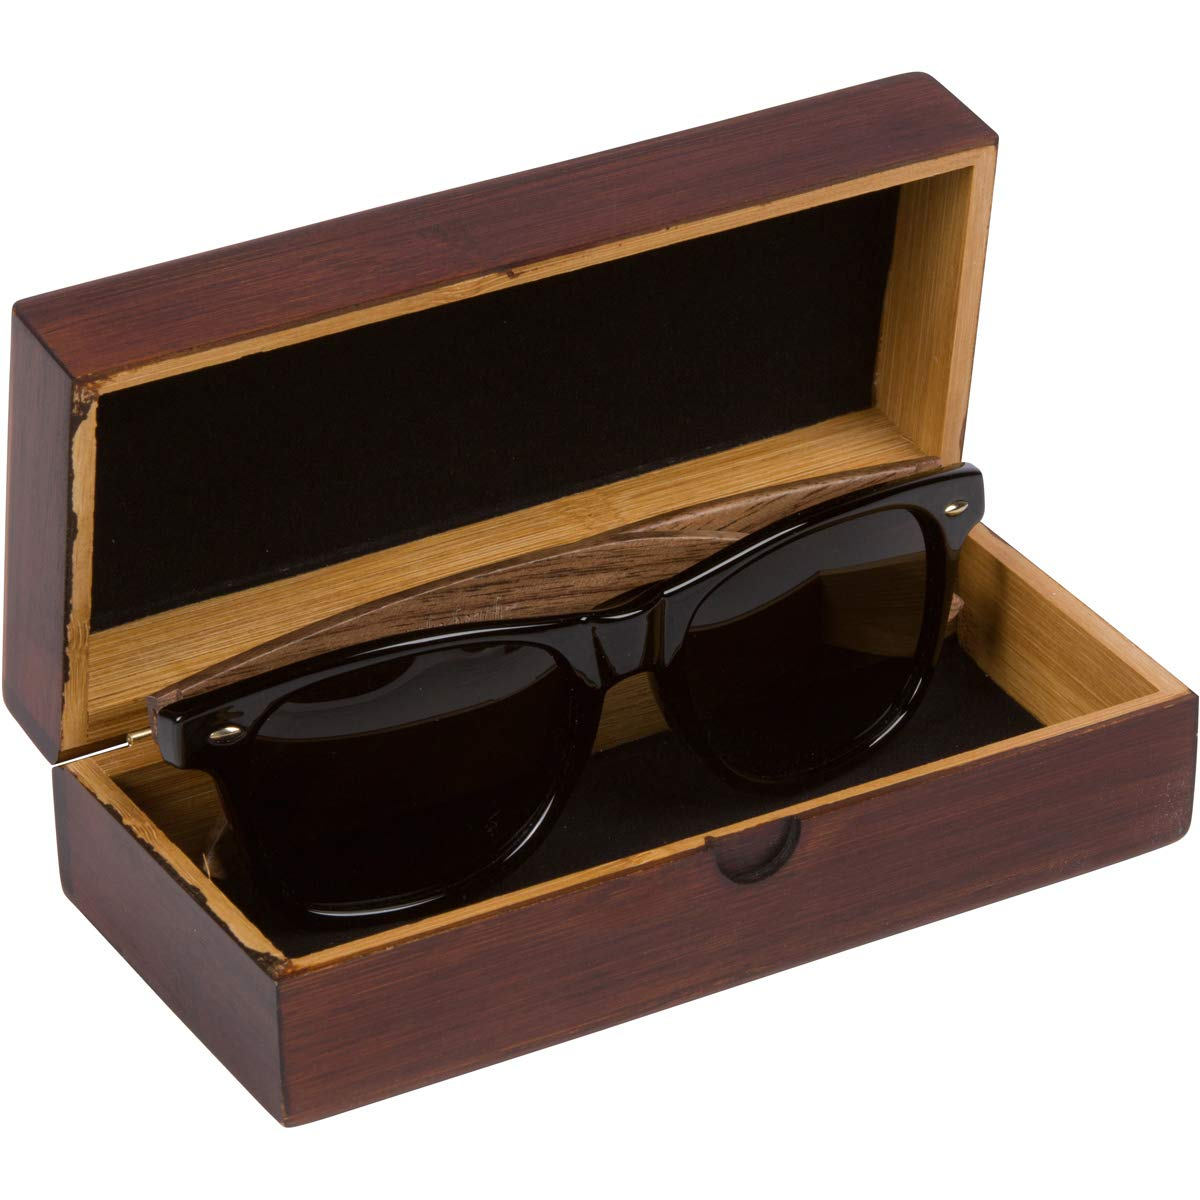 WOODIES Walnut Wood Wayfarer Sunglasses with Polarized Lens in Wood Display Box for Men or Women by Woodies (Image #7)